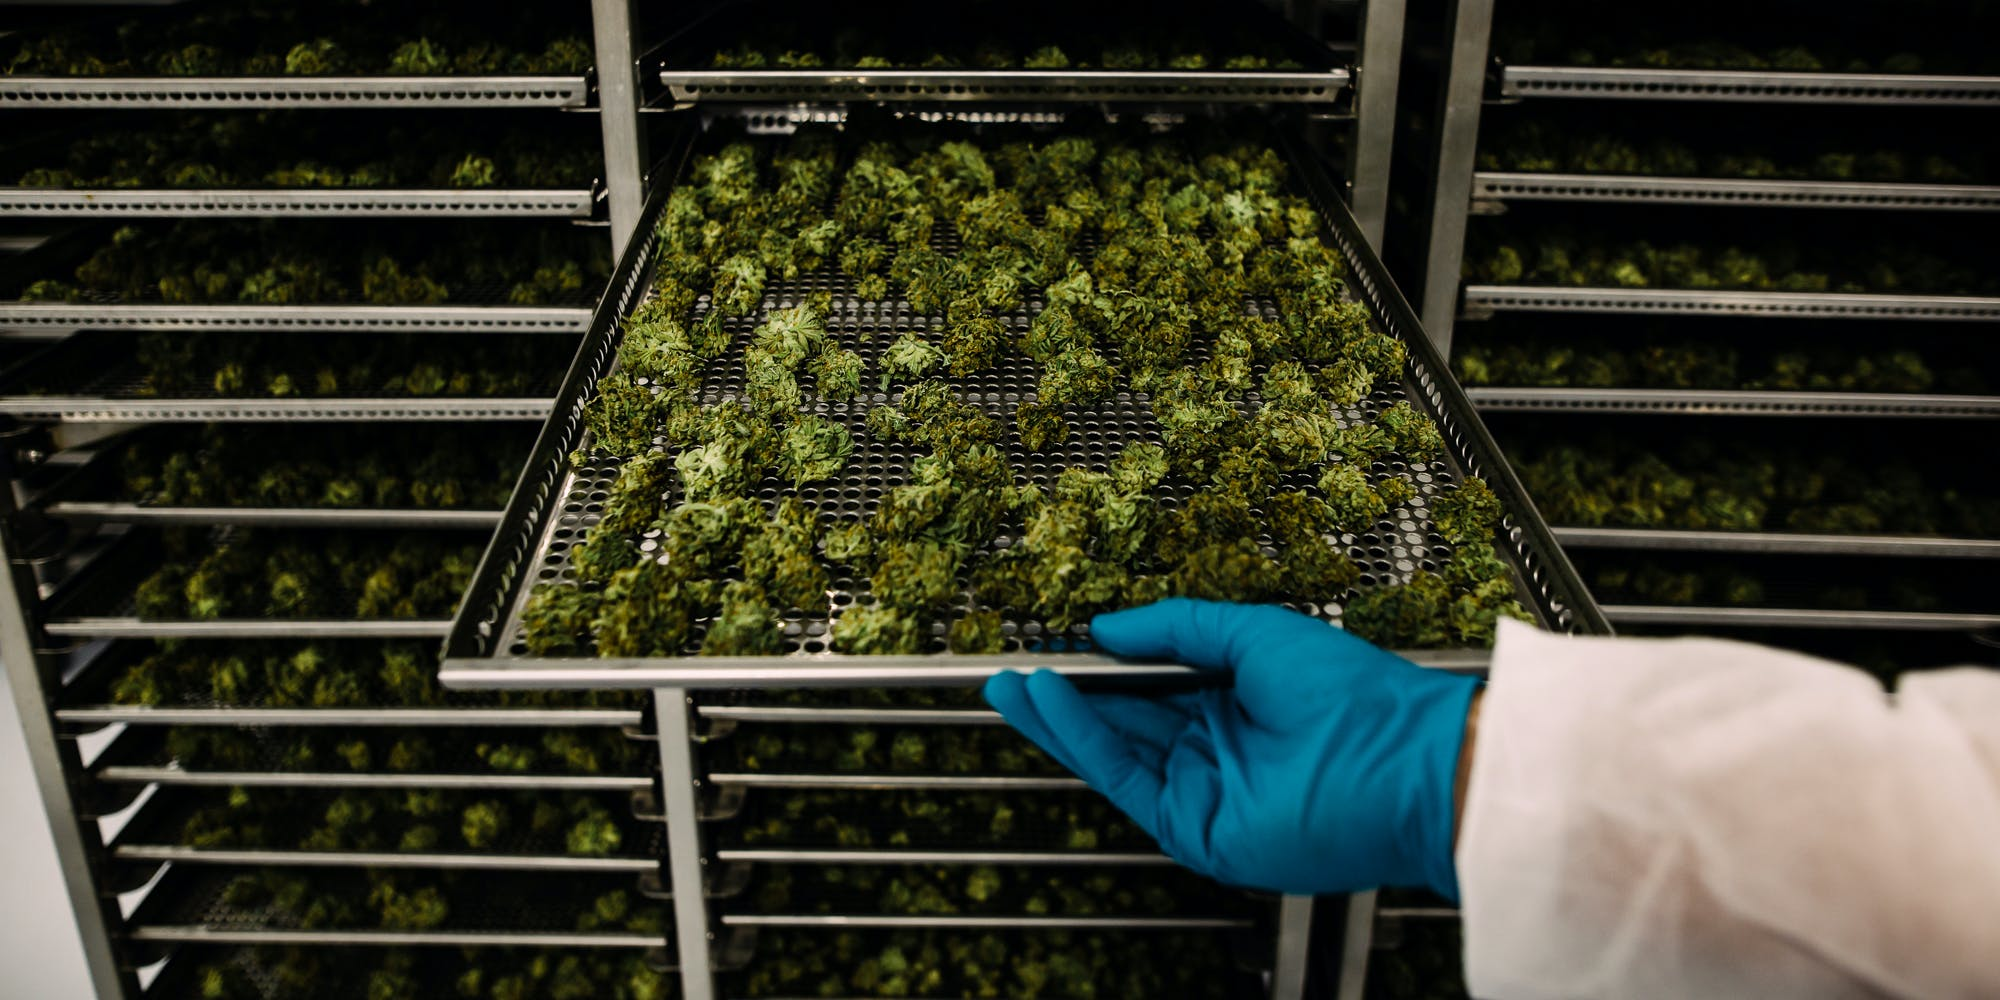 An employee pulls out a tray of drying cannabis buds at the CannTrust Holding Inc. Niagara Perpetual Harvest facility in Pelham, Ontario, Canada, on Wednesday, July 11, 2018. Nova Scotia just announced it'll be the first province in the country to open combined alcohol-cannabis retailers.